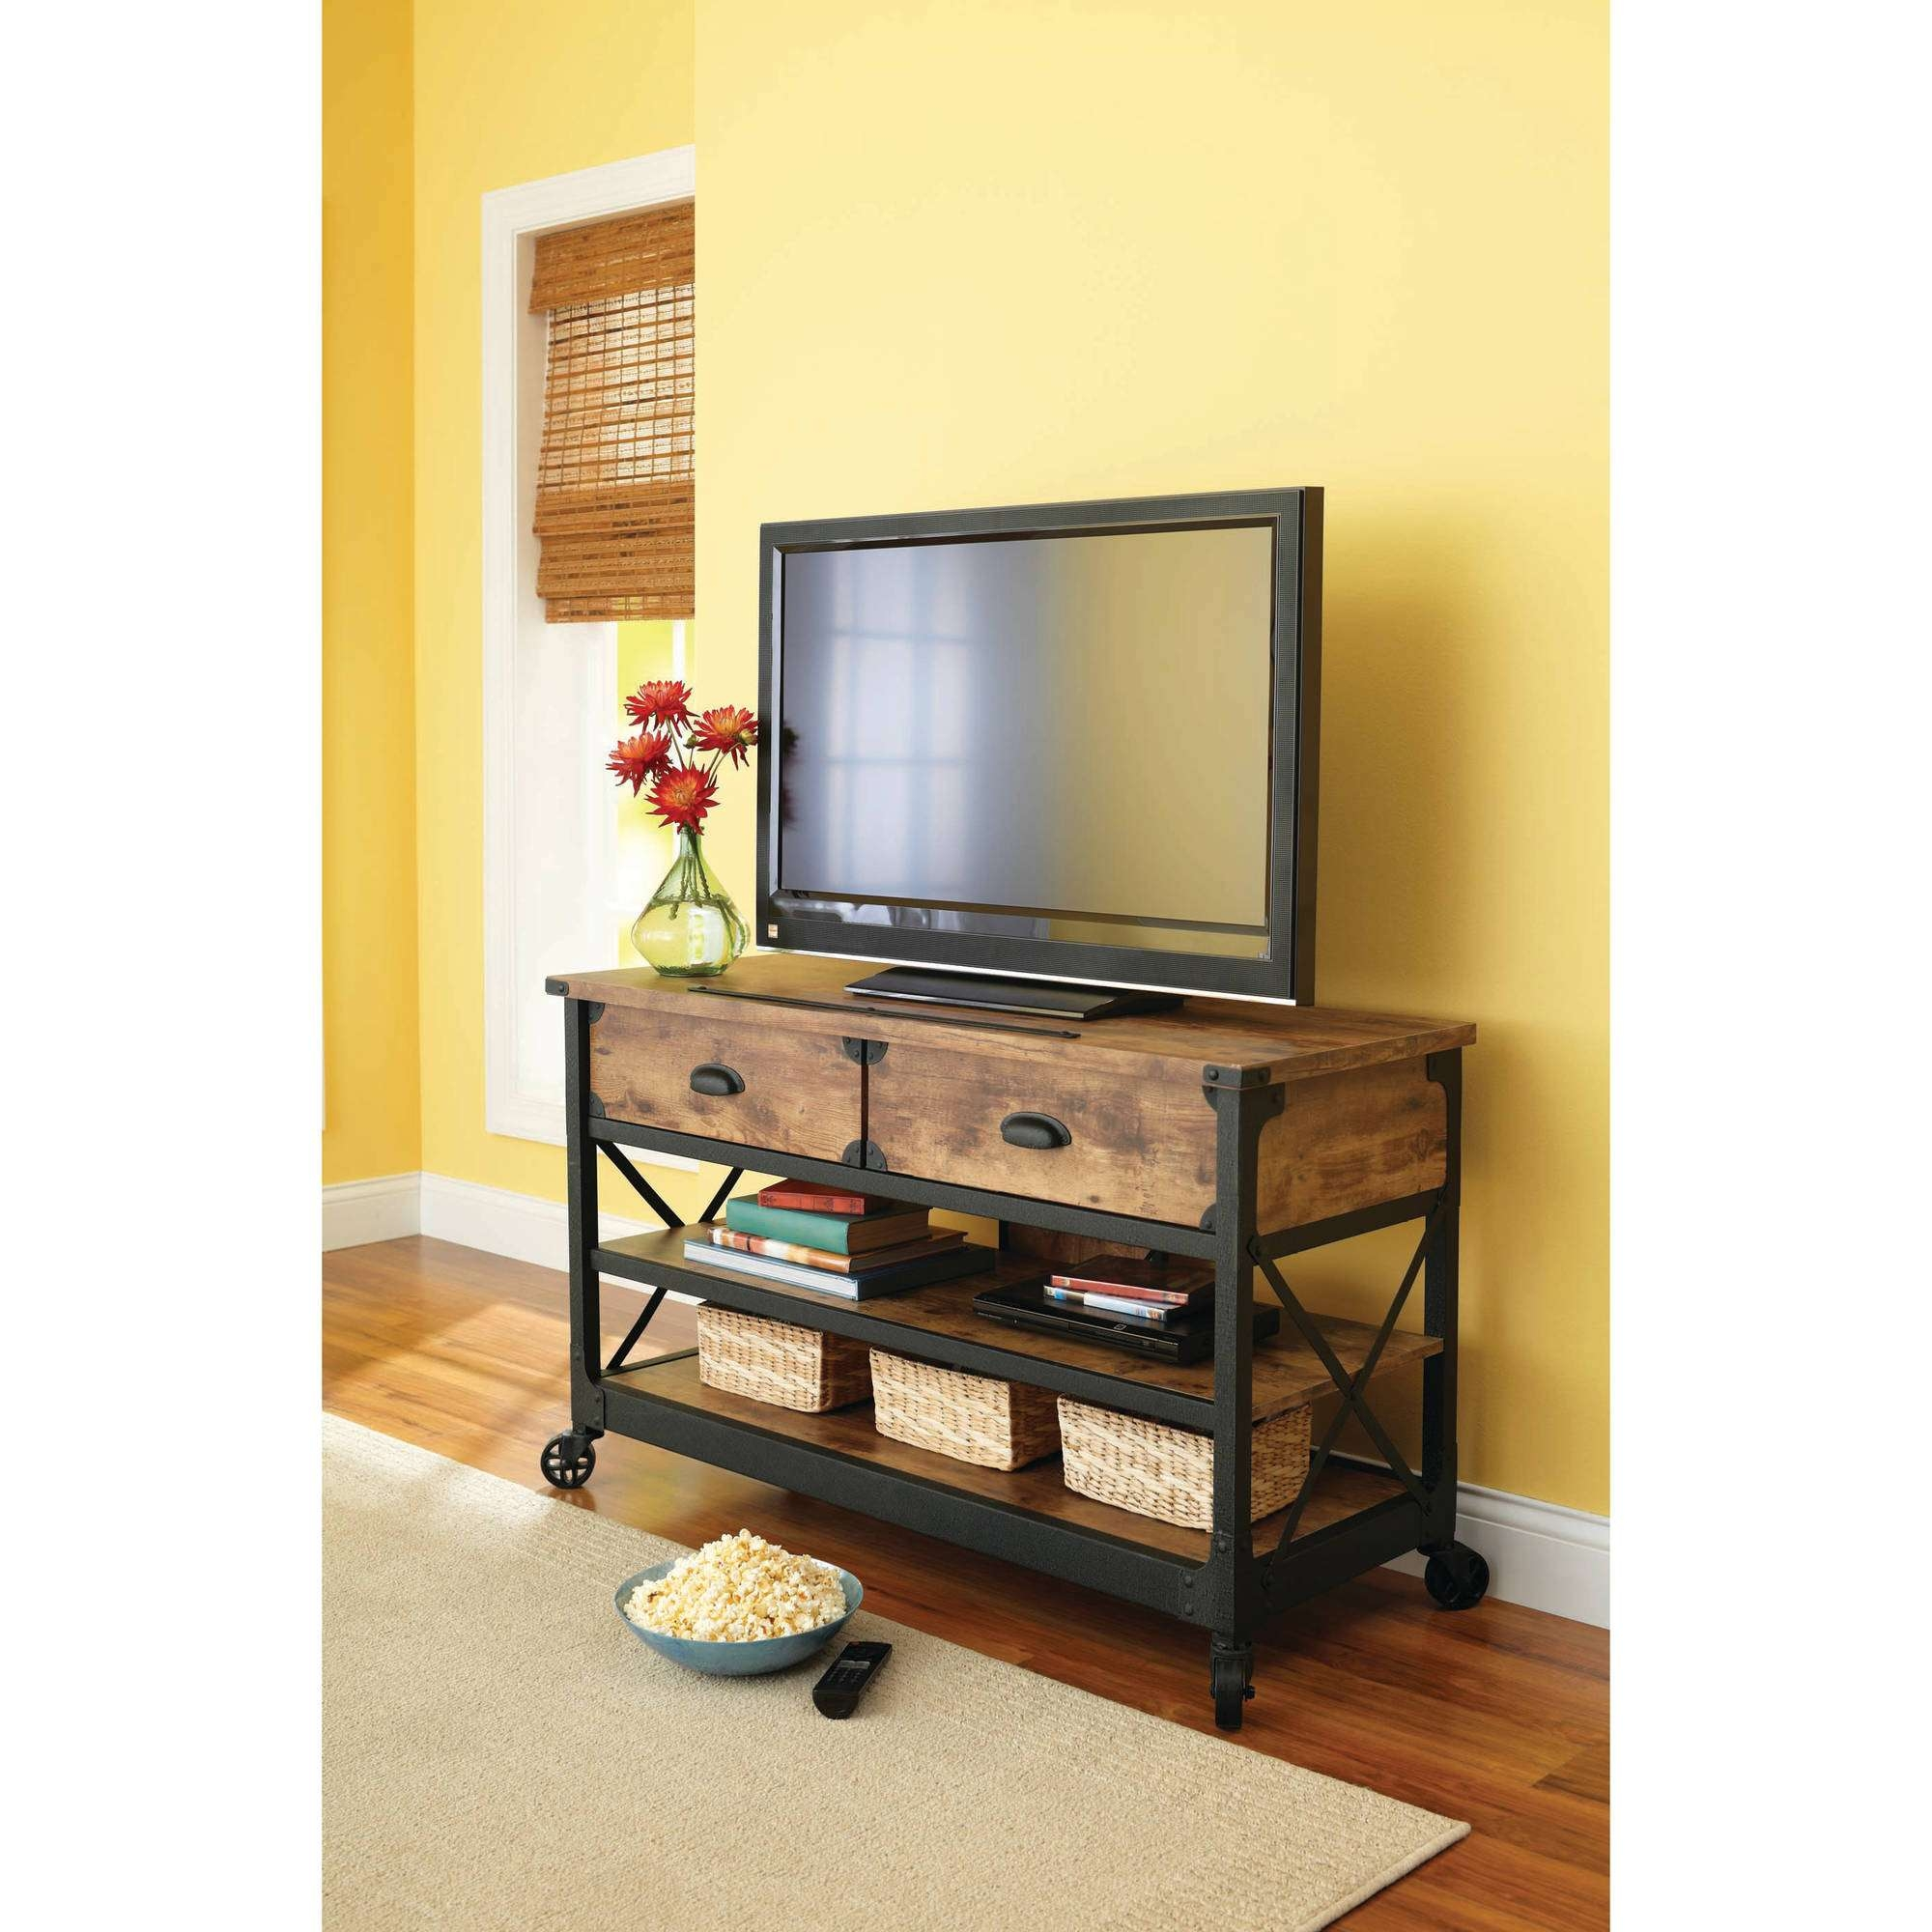 Better Homes And Gardens Rustic Country Antiqued Black/pine Panel For Corner Tv Stands With Drawers (View 15 of 15)